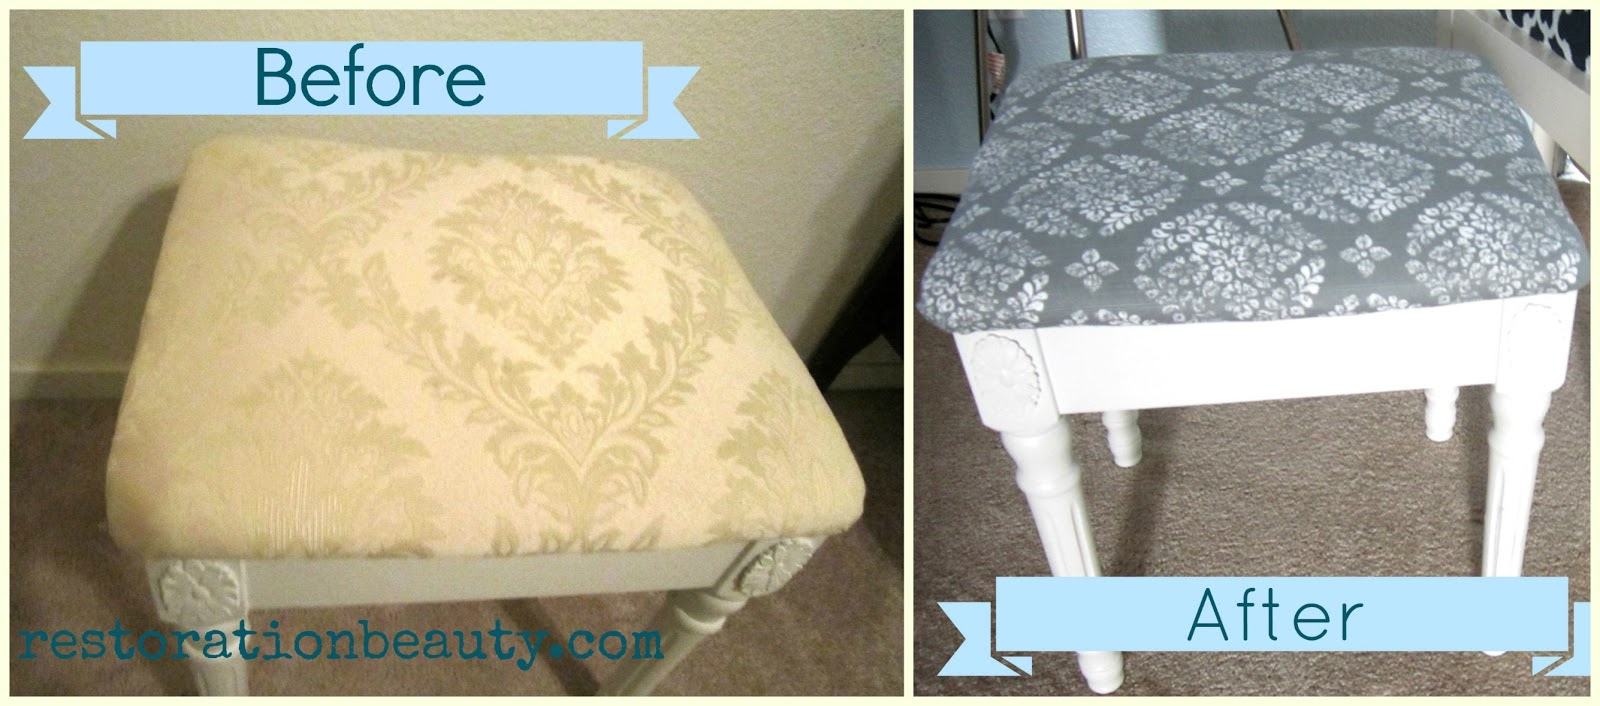 dunk threshold chairs crown stool height bright trim glamorous fontaine vanity products mark width fontainevanity item